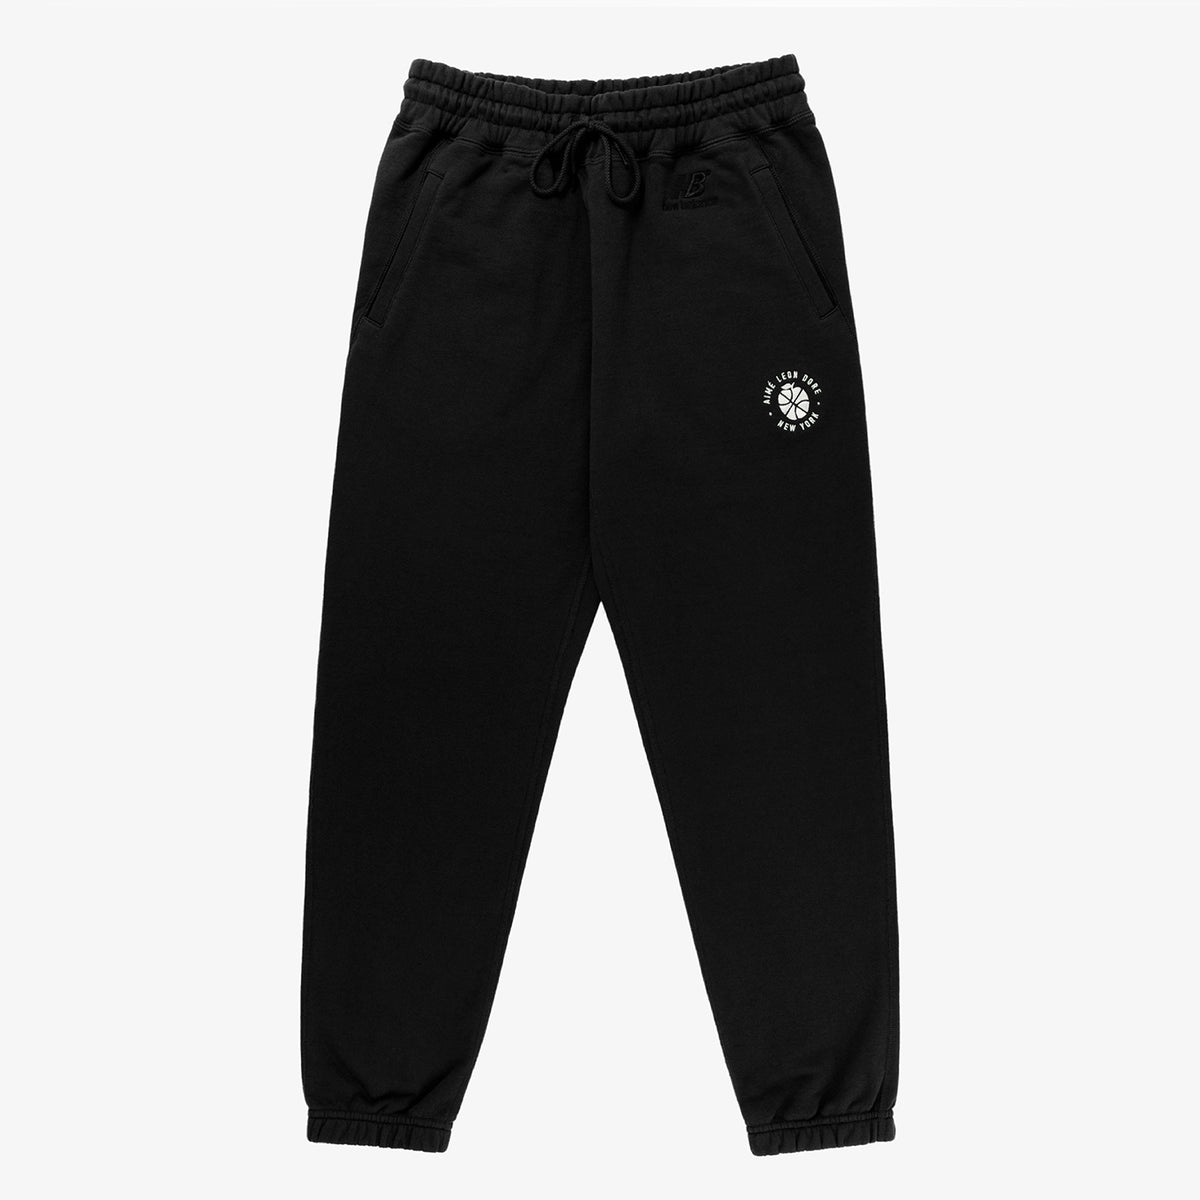 ALD / New Balance Logo Sweats